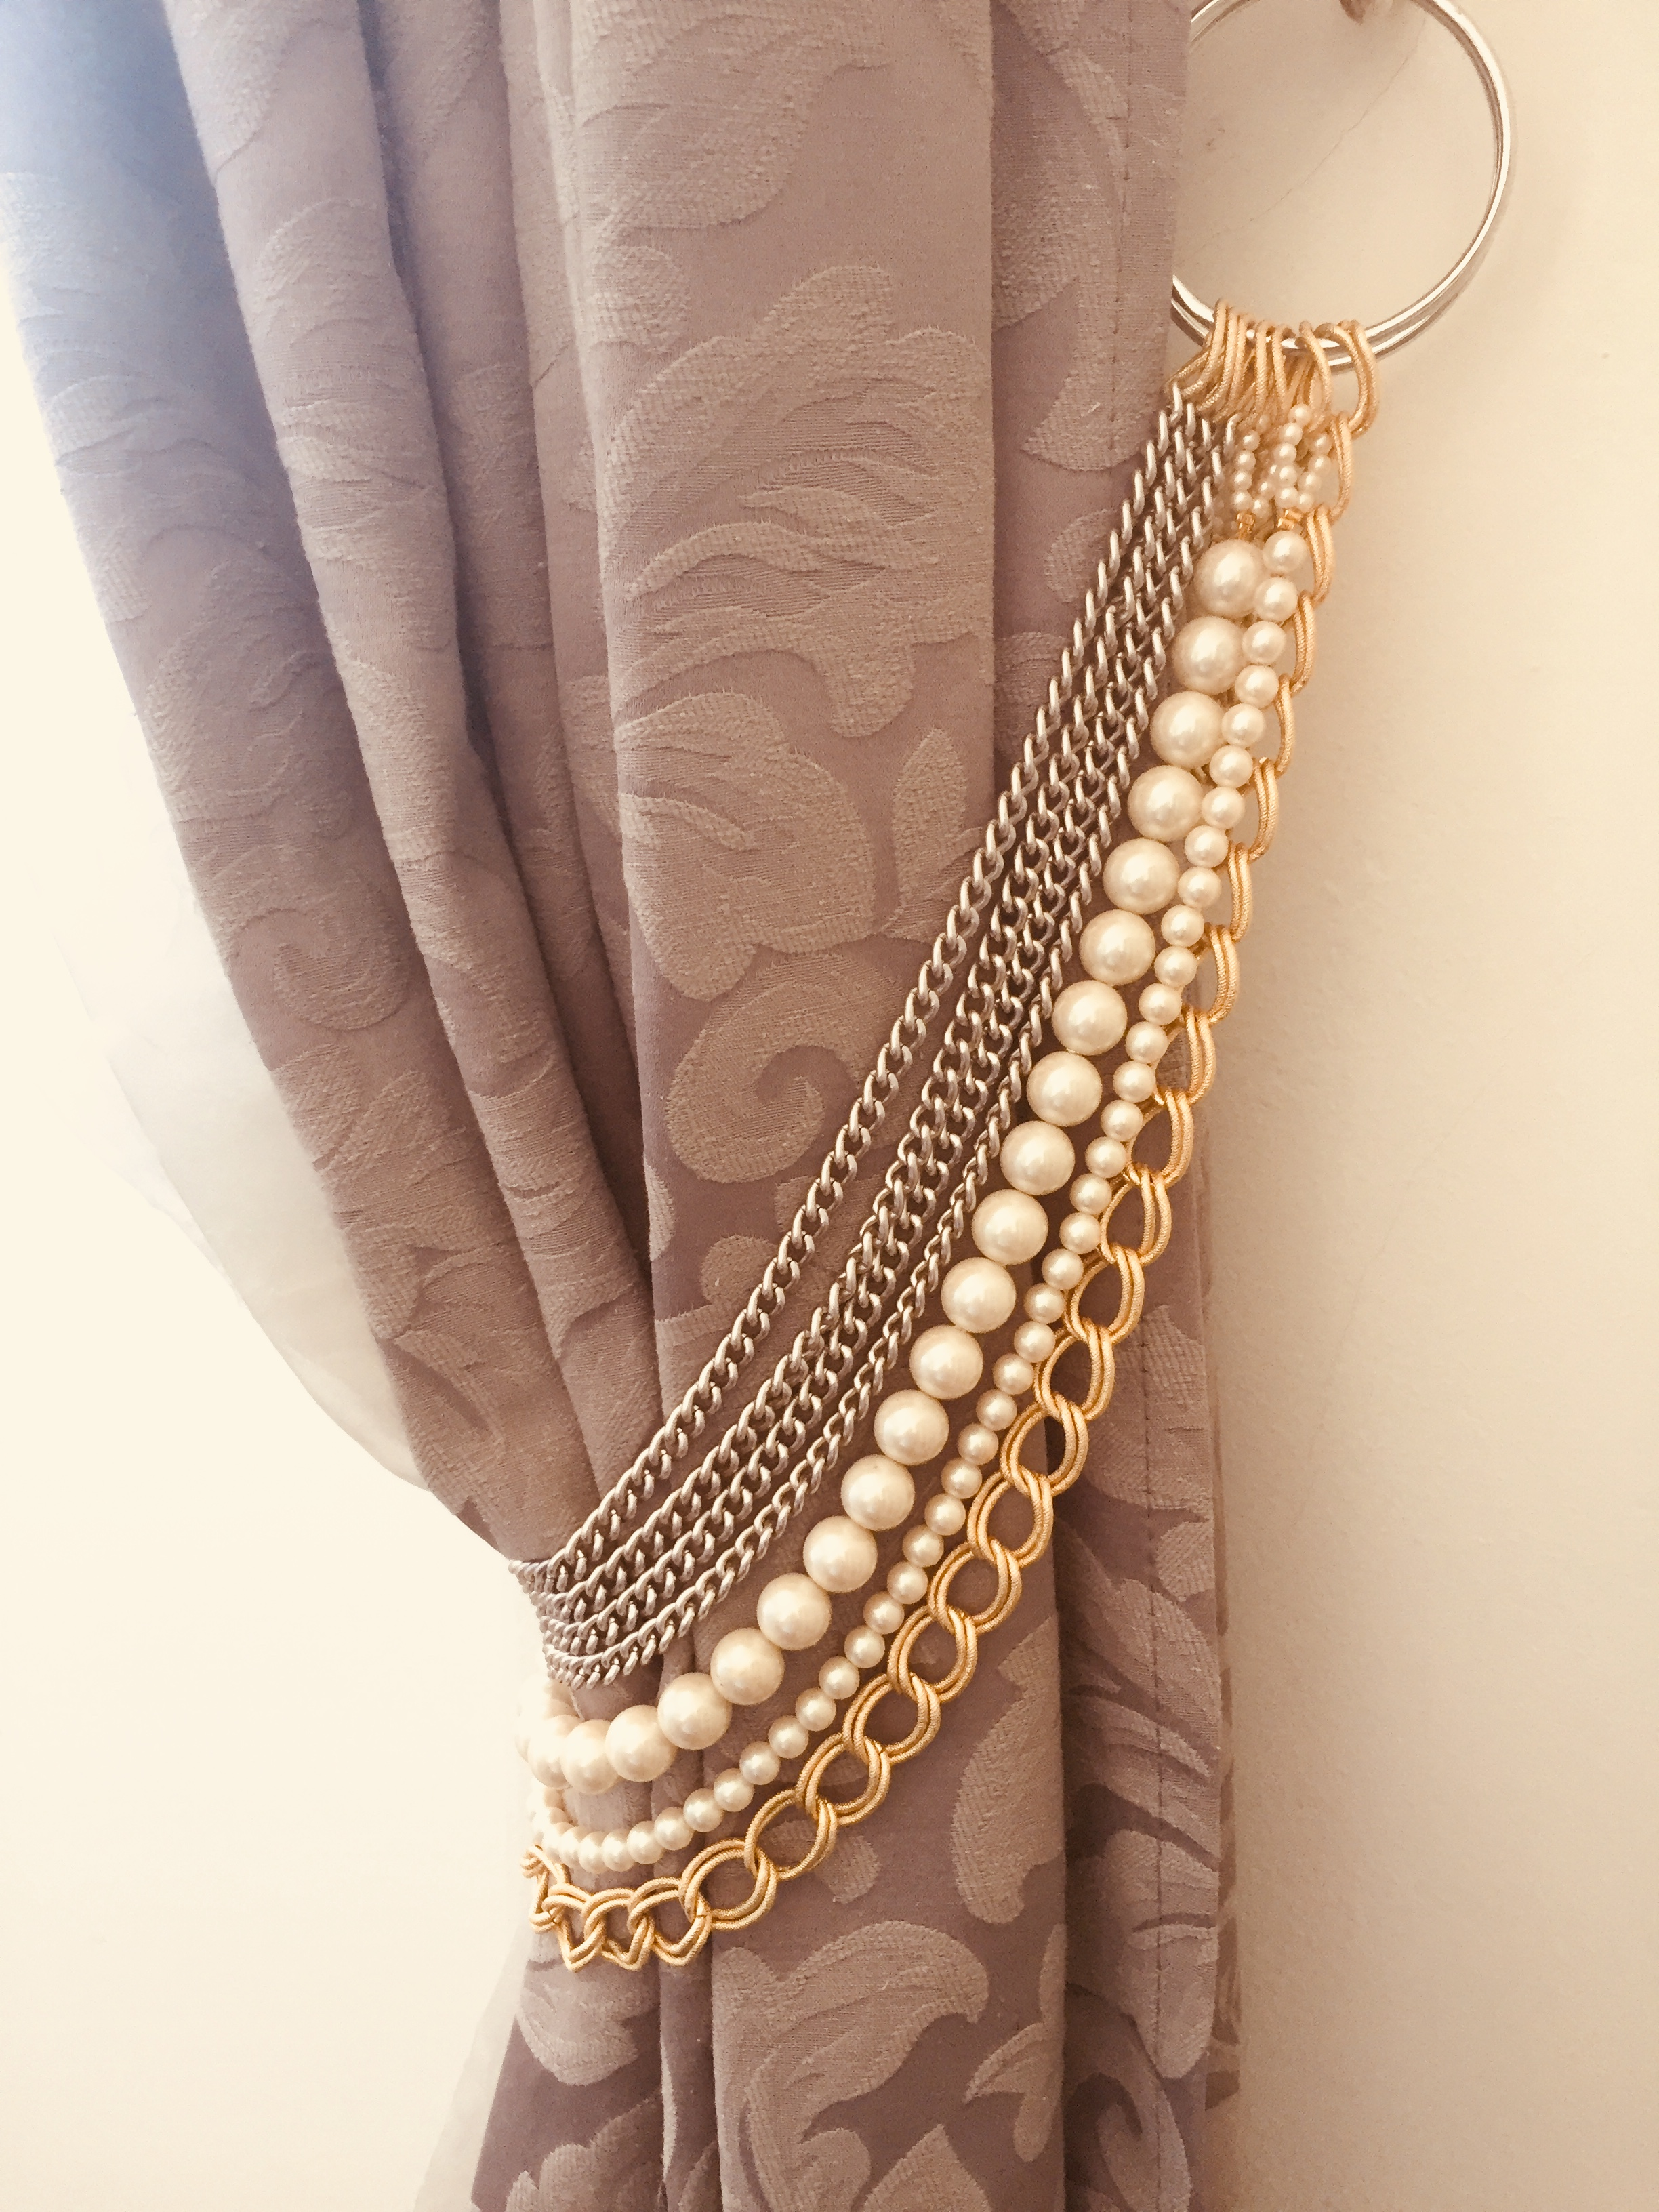 FRAN silver and gold chains tieback with faux pearls